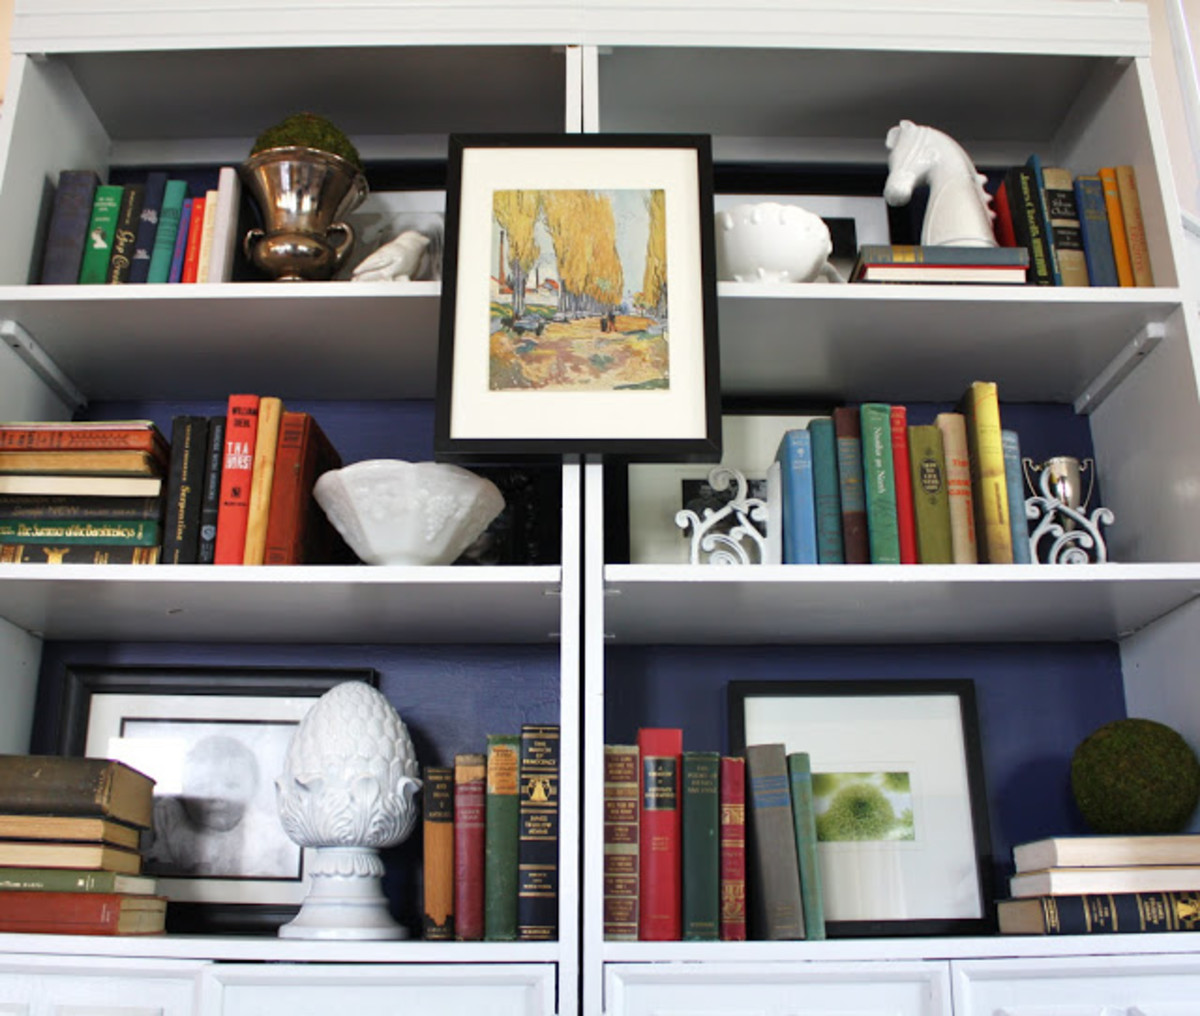 Adding artwork to a bookshelf gives it a fresh look.